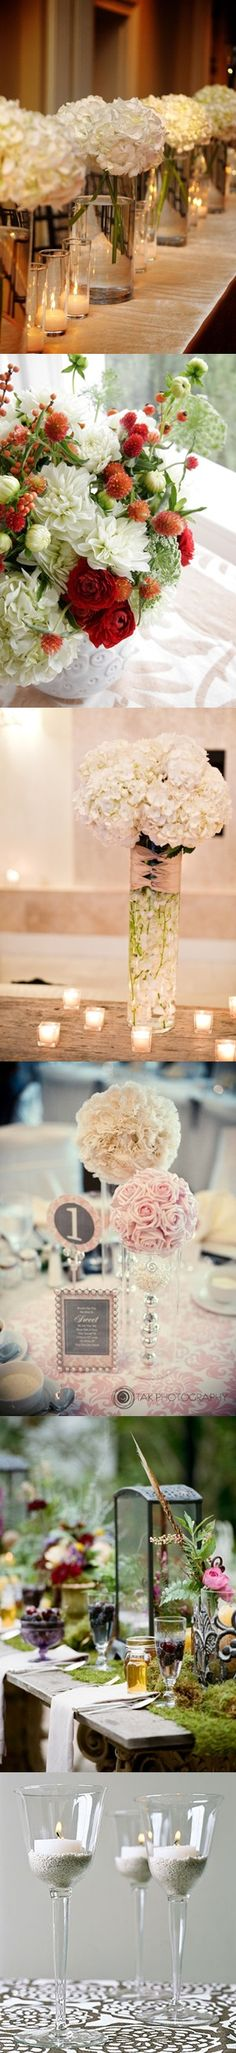 Wedding Centerpiece <3 the pink with pearls!!